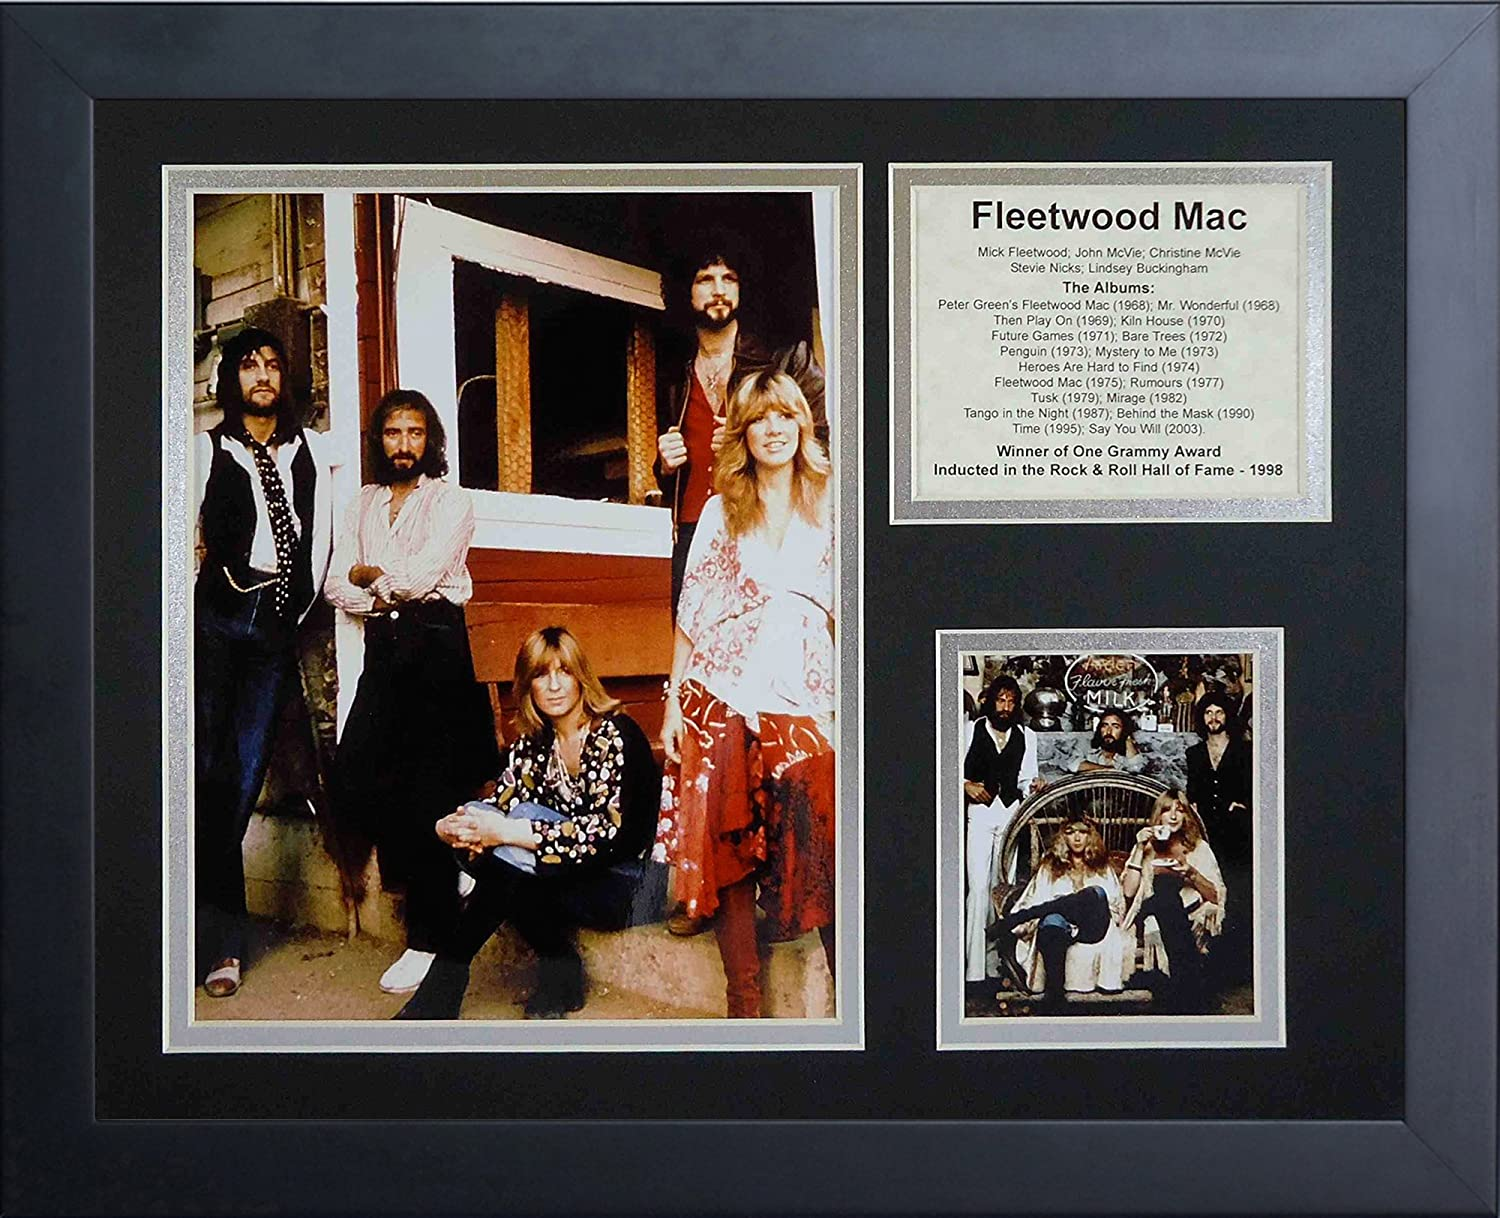 11 x 14-Inch Legends Never Die Fleetwood Mac Framed Photo Collage